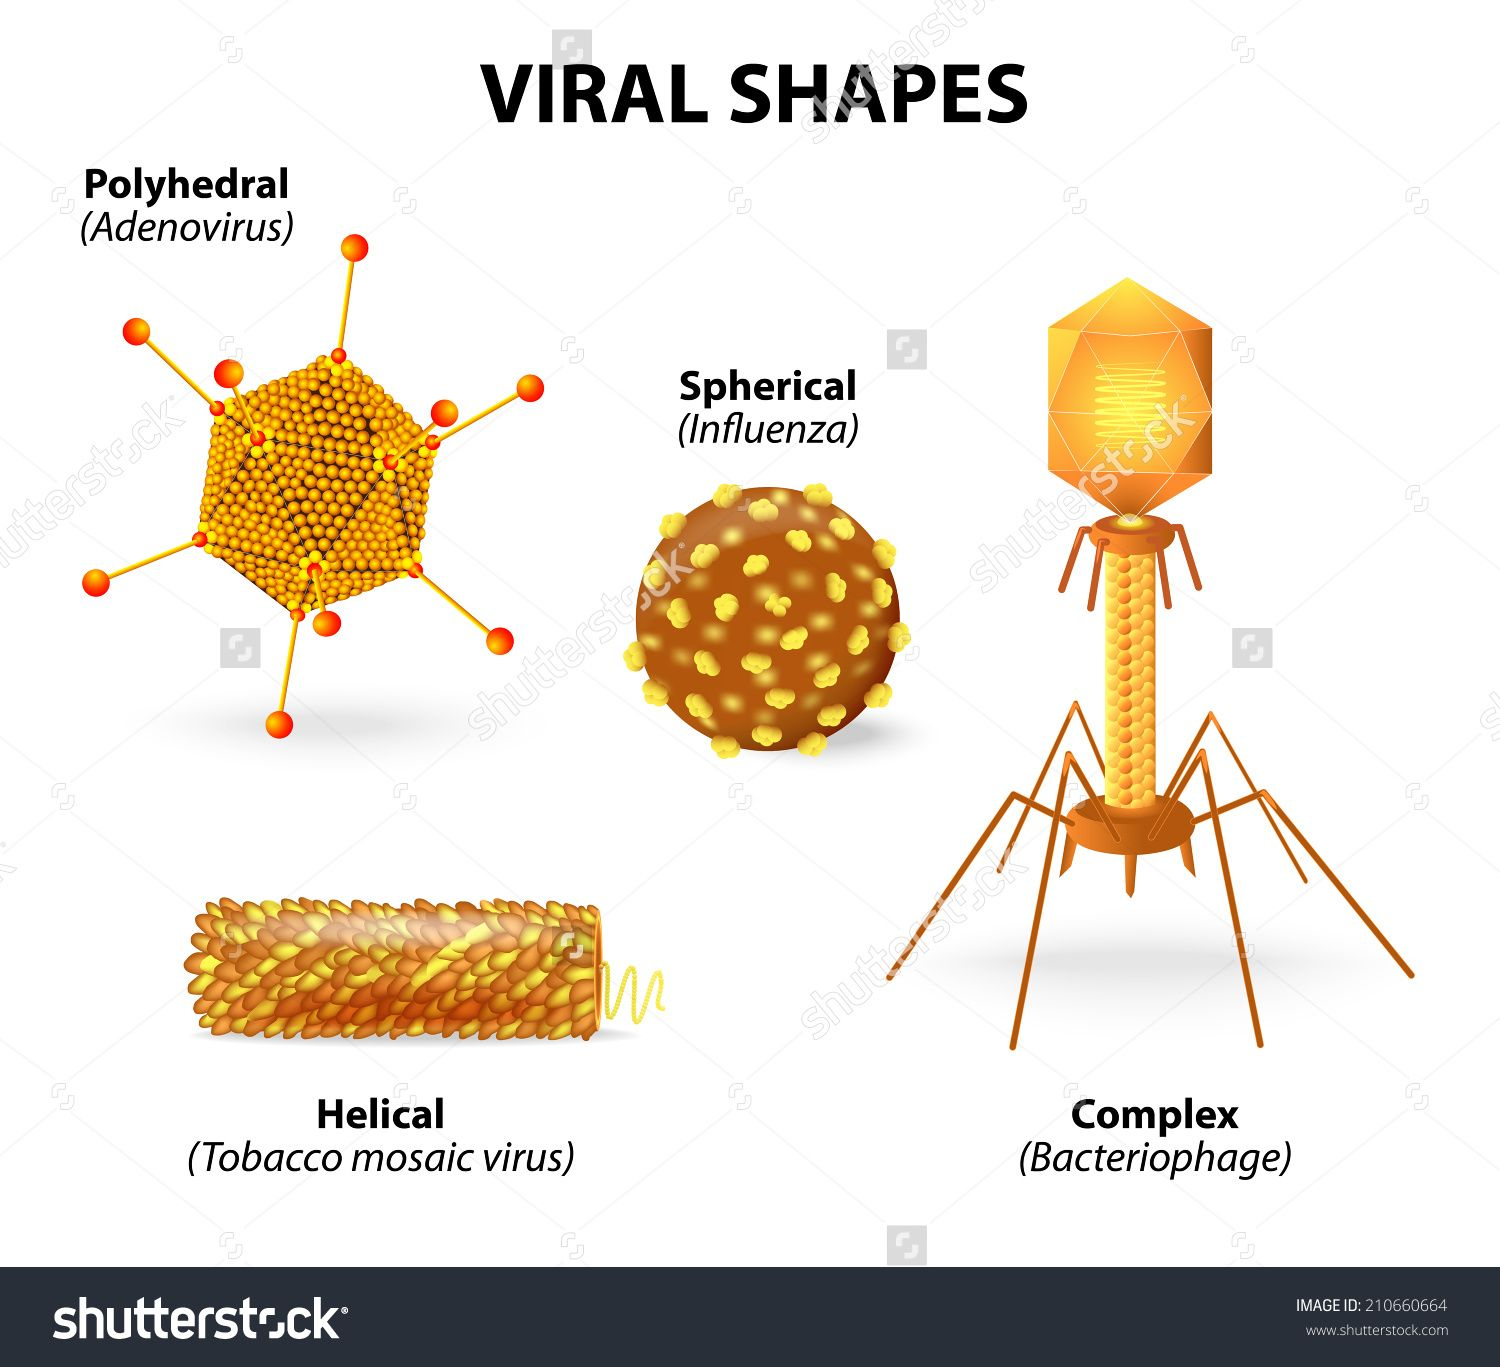 Viral Nano News Viralnanonews: Viral Shapes. Vector Illustration Showing That There Are